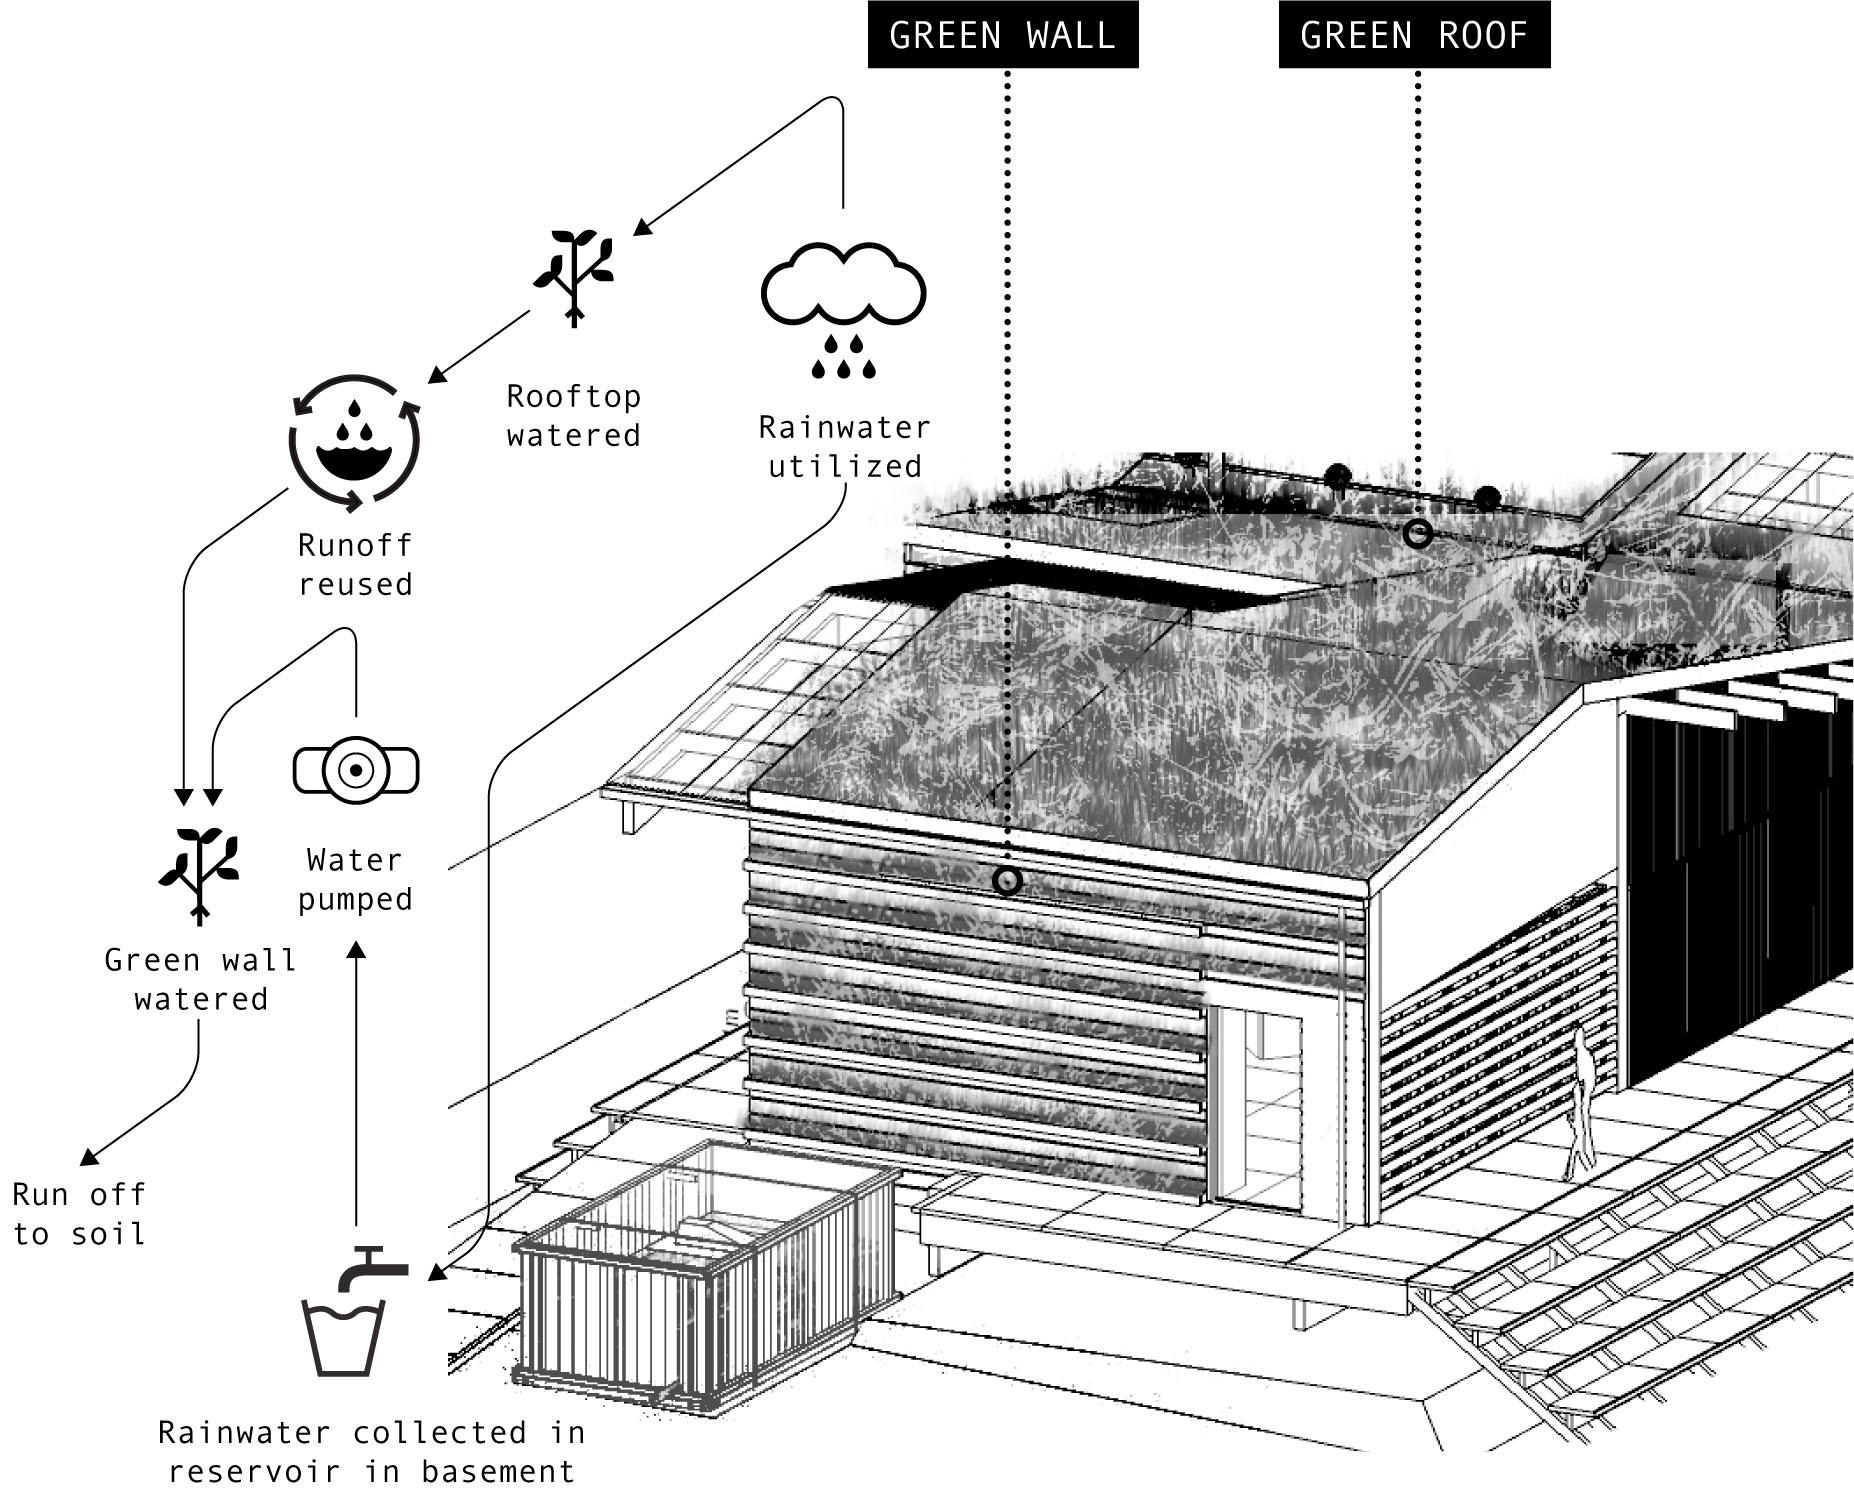 green roof water runoff diagram mercedes r129 wiring diagrams wall and drip irrigation r urban english